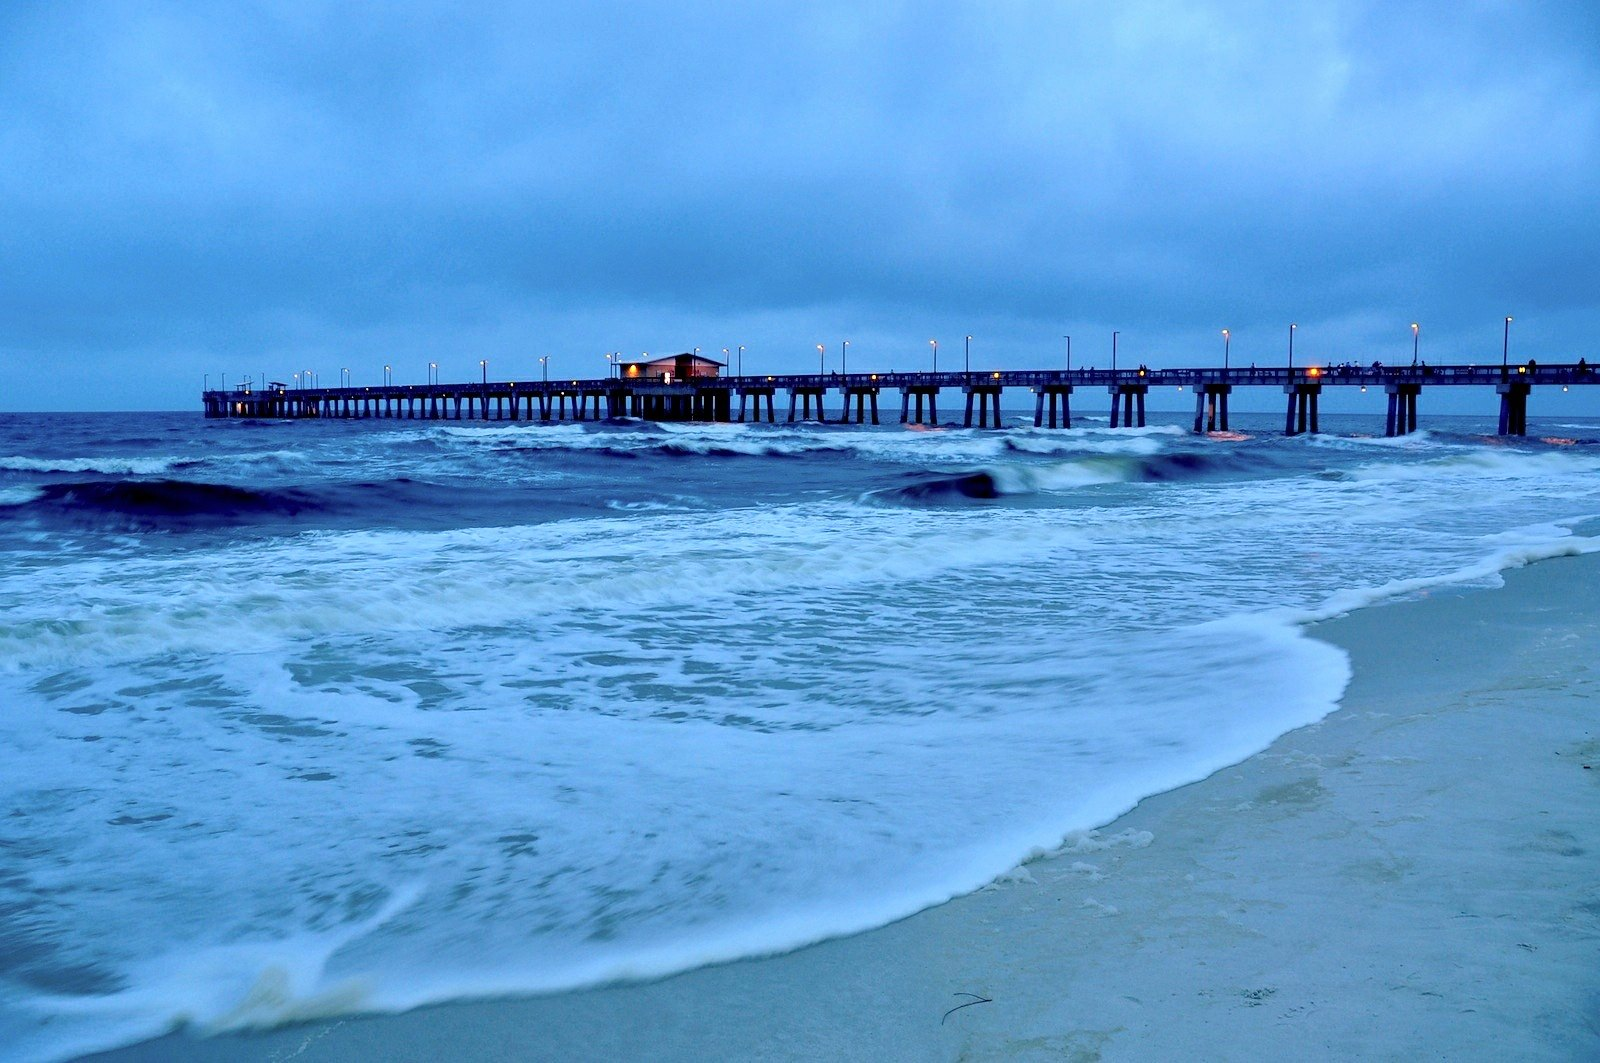 Back to photostream for Gulf shores pier fishing forum